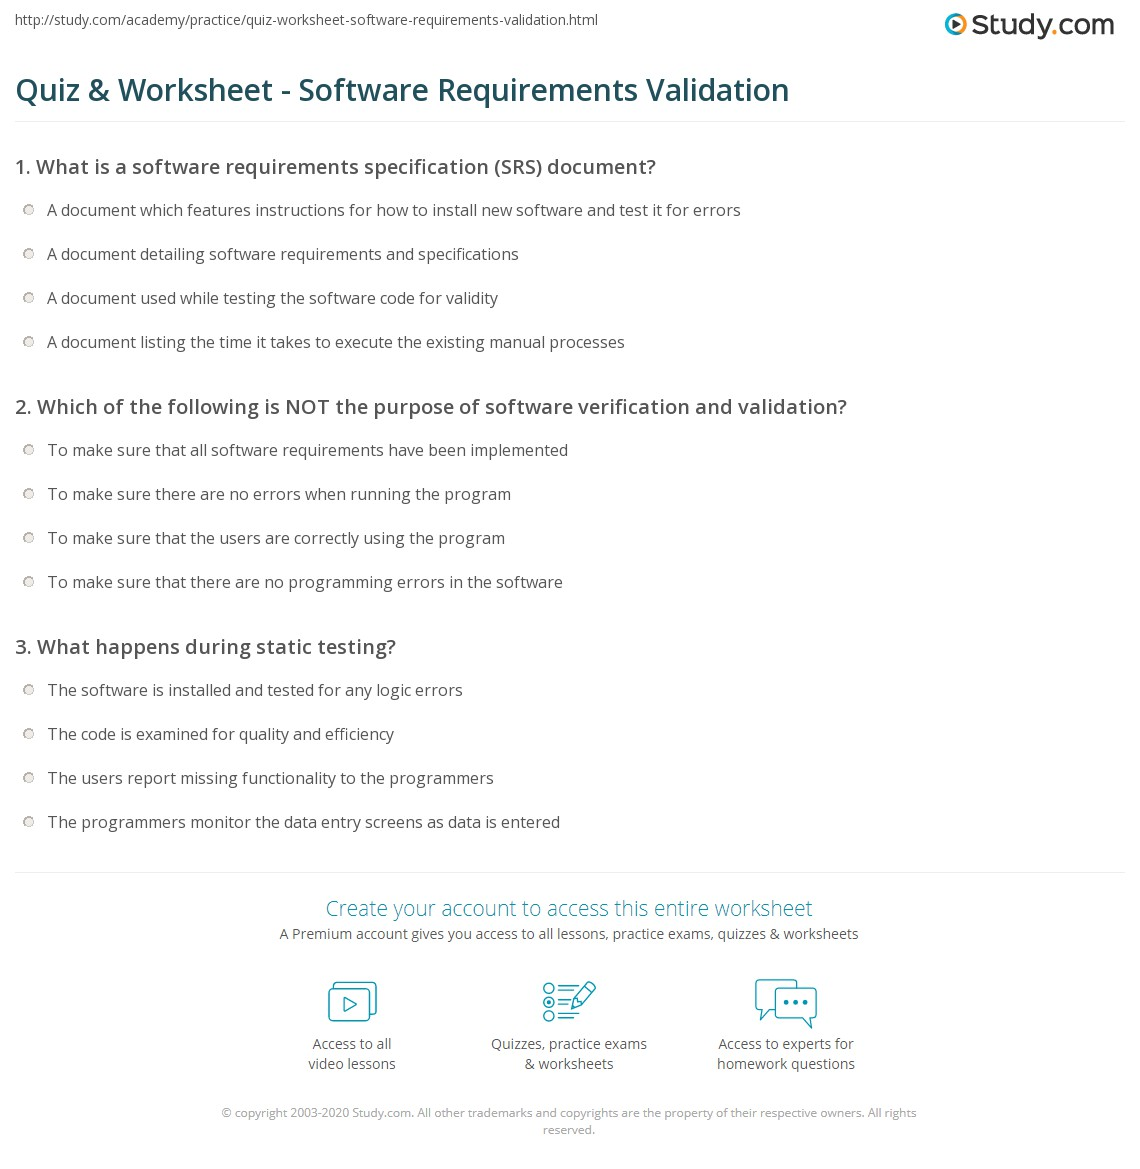 Srs Software Requirement Specification Template | Quiz Worksheet Software Requirements Validation Study Com